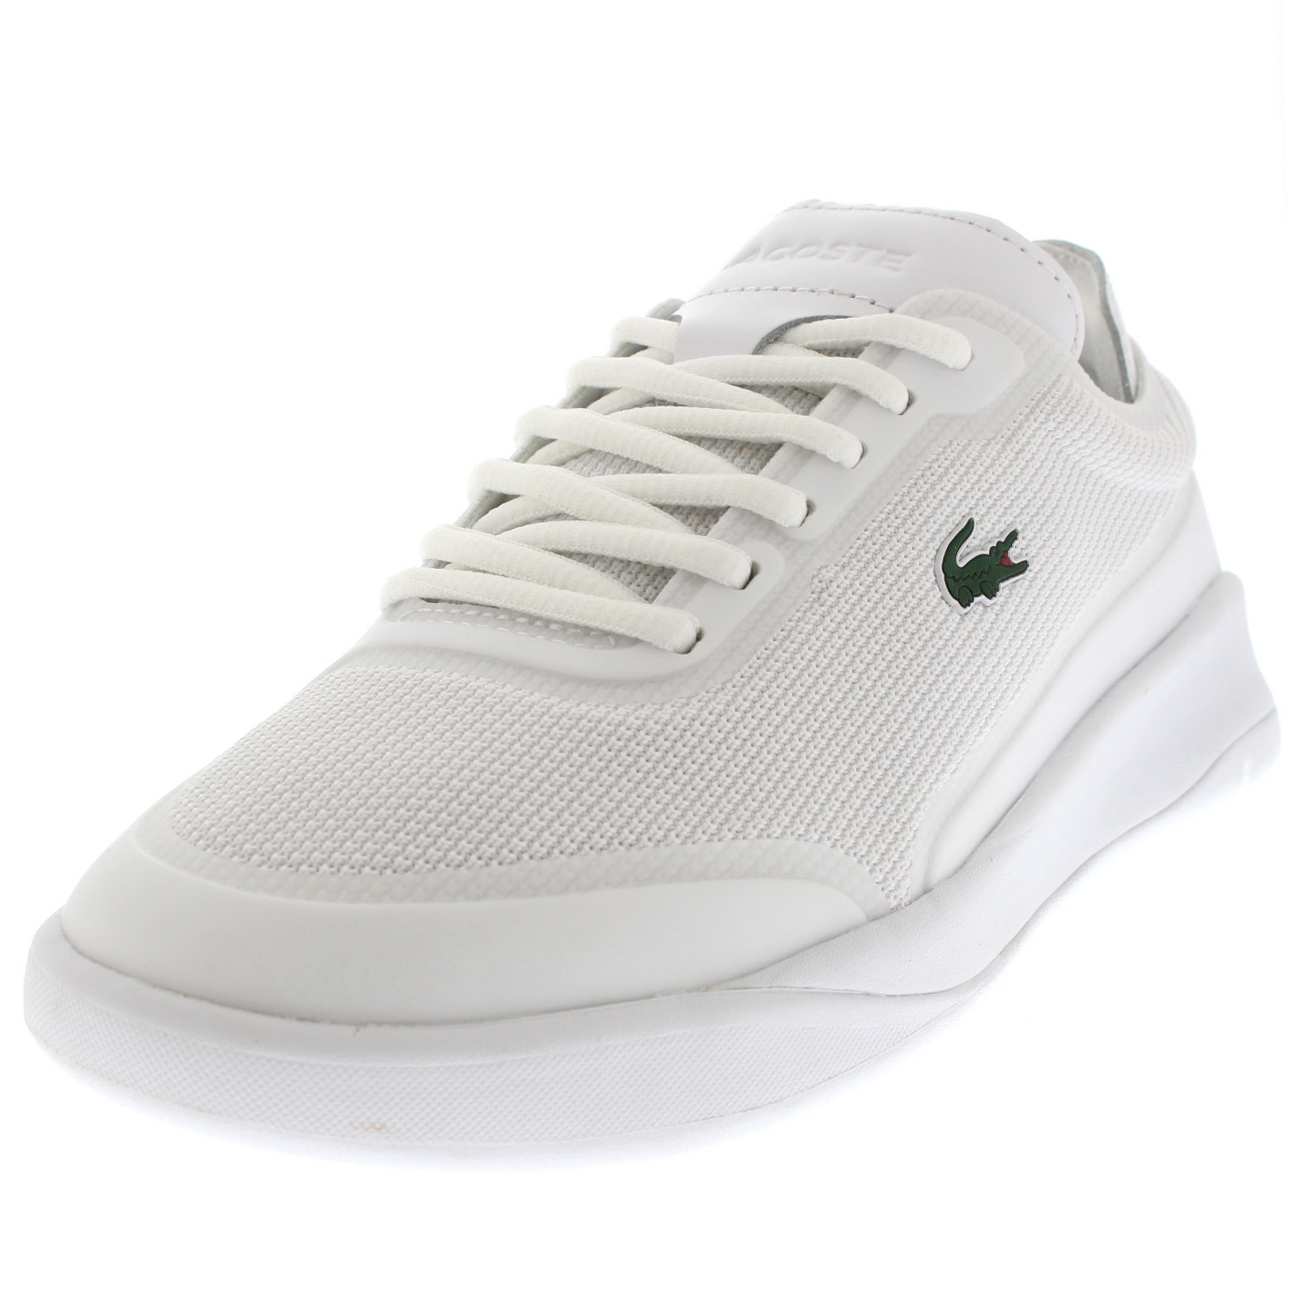 Lacoste Spirit Elite 117 Trainers